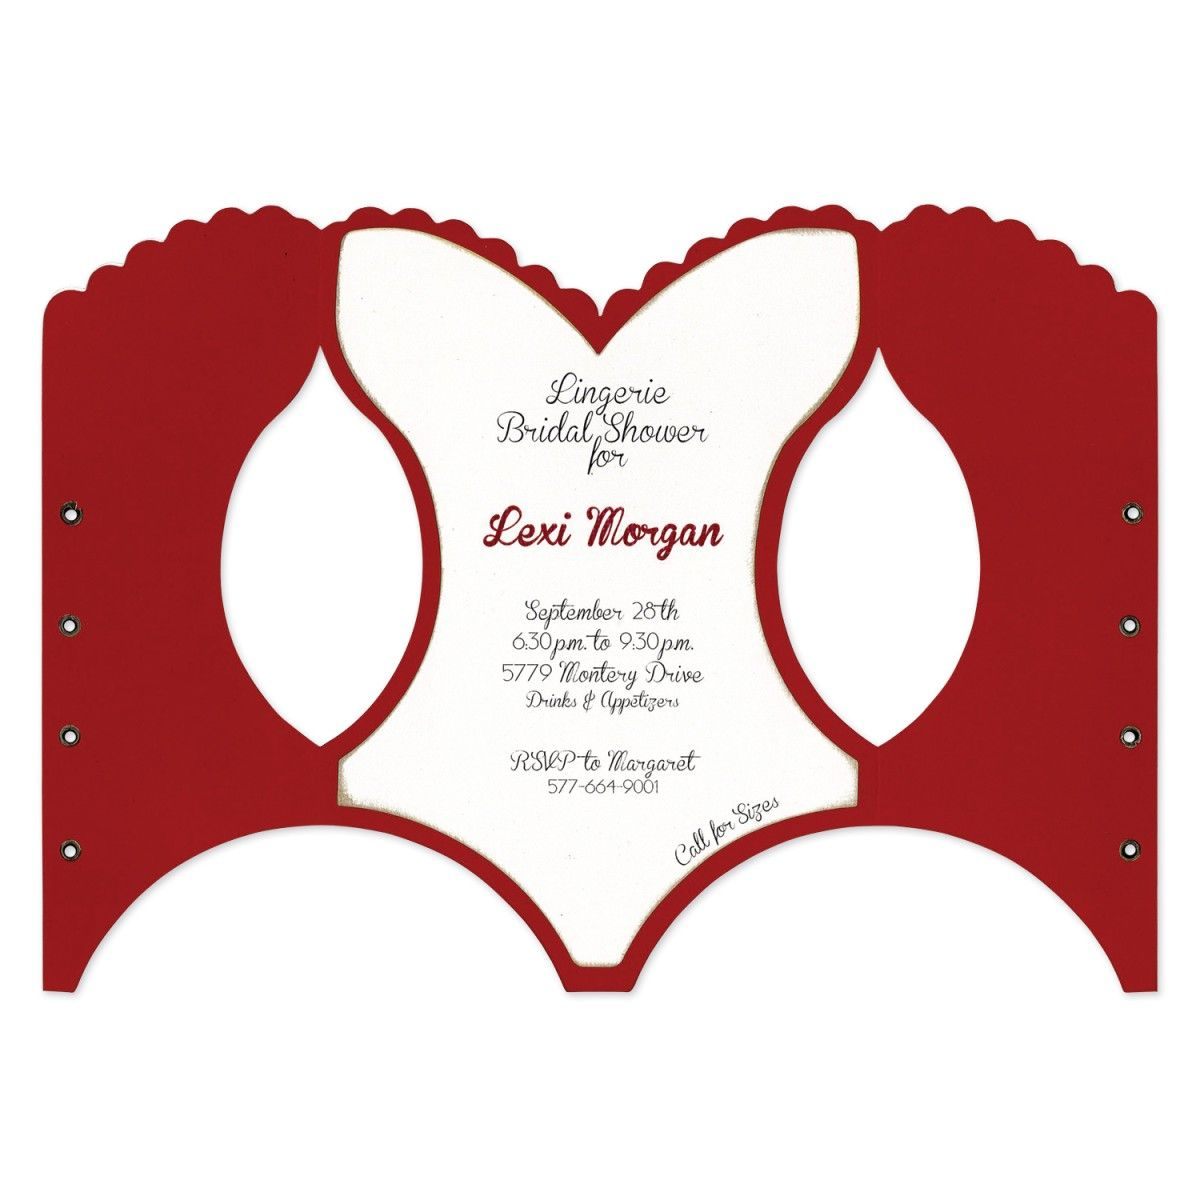 Make Fun Invitations For Bridal Showers And Bachelorette Parties With This Unique Corset Shaped Coordinates A7 Card Mats Nc153sj